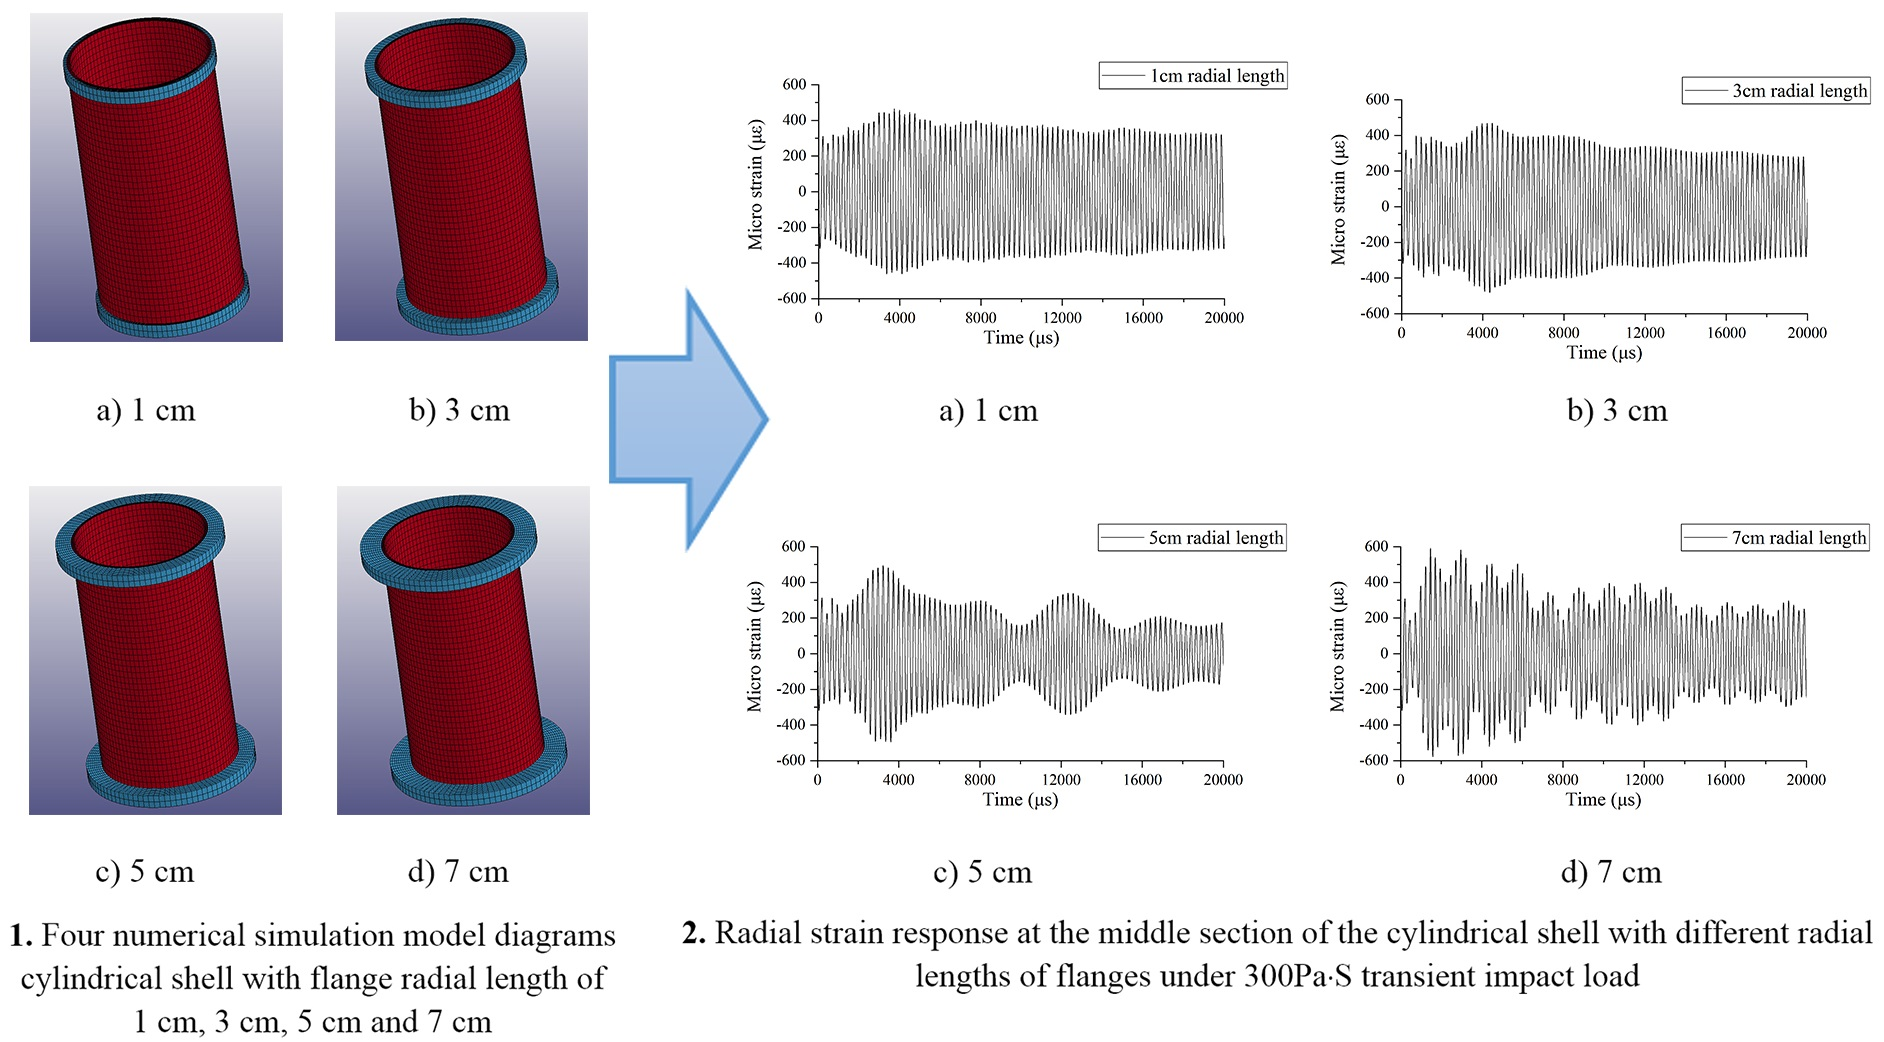 Numerical simulation of the effect of flange radial length on strain growth of cylindrical containment vessels